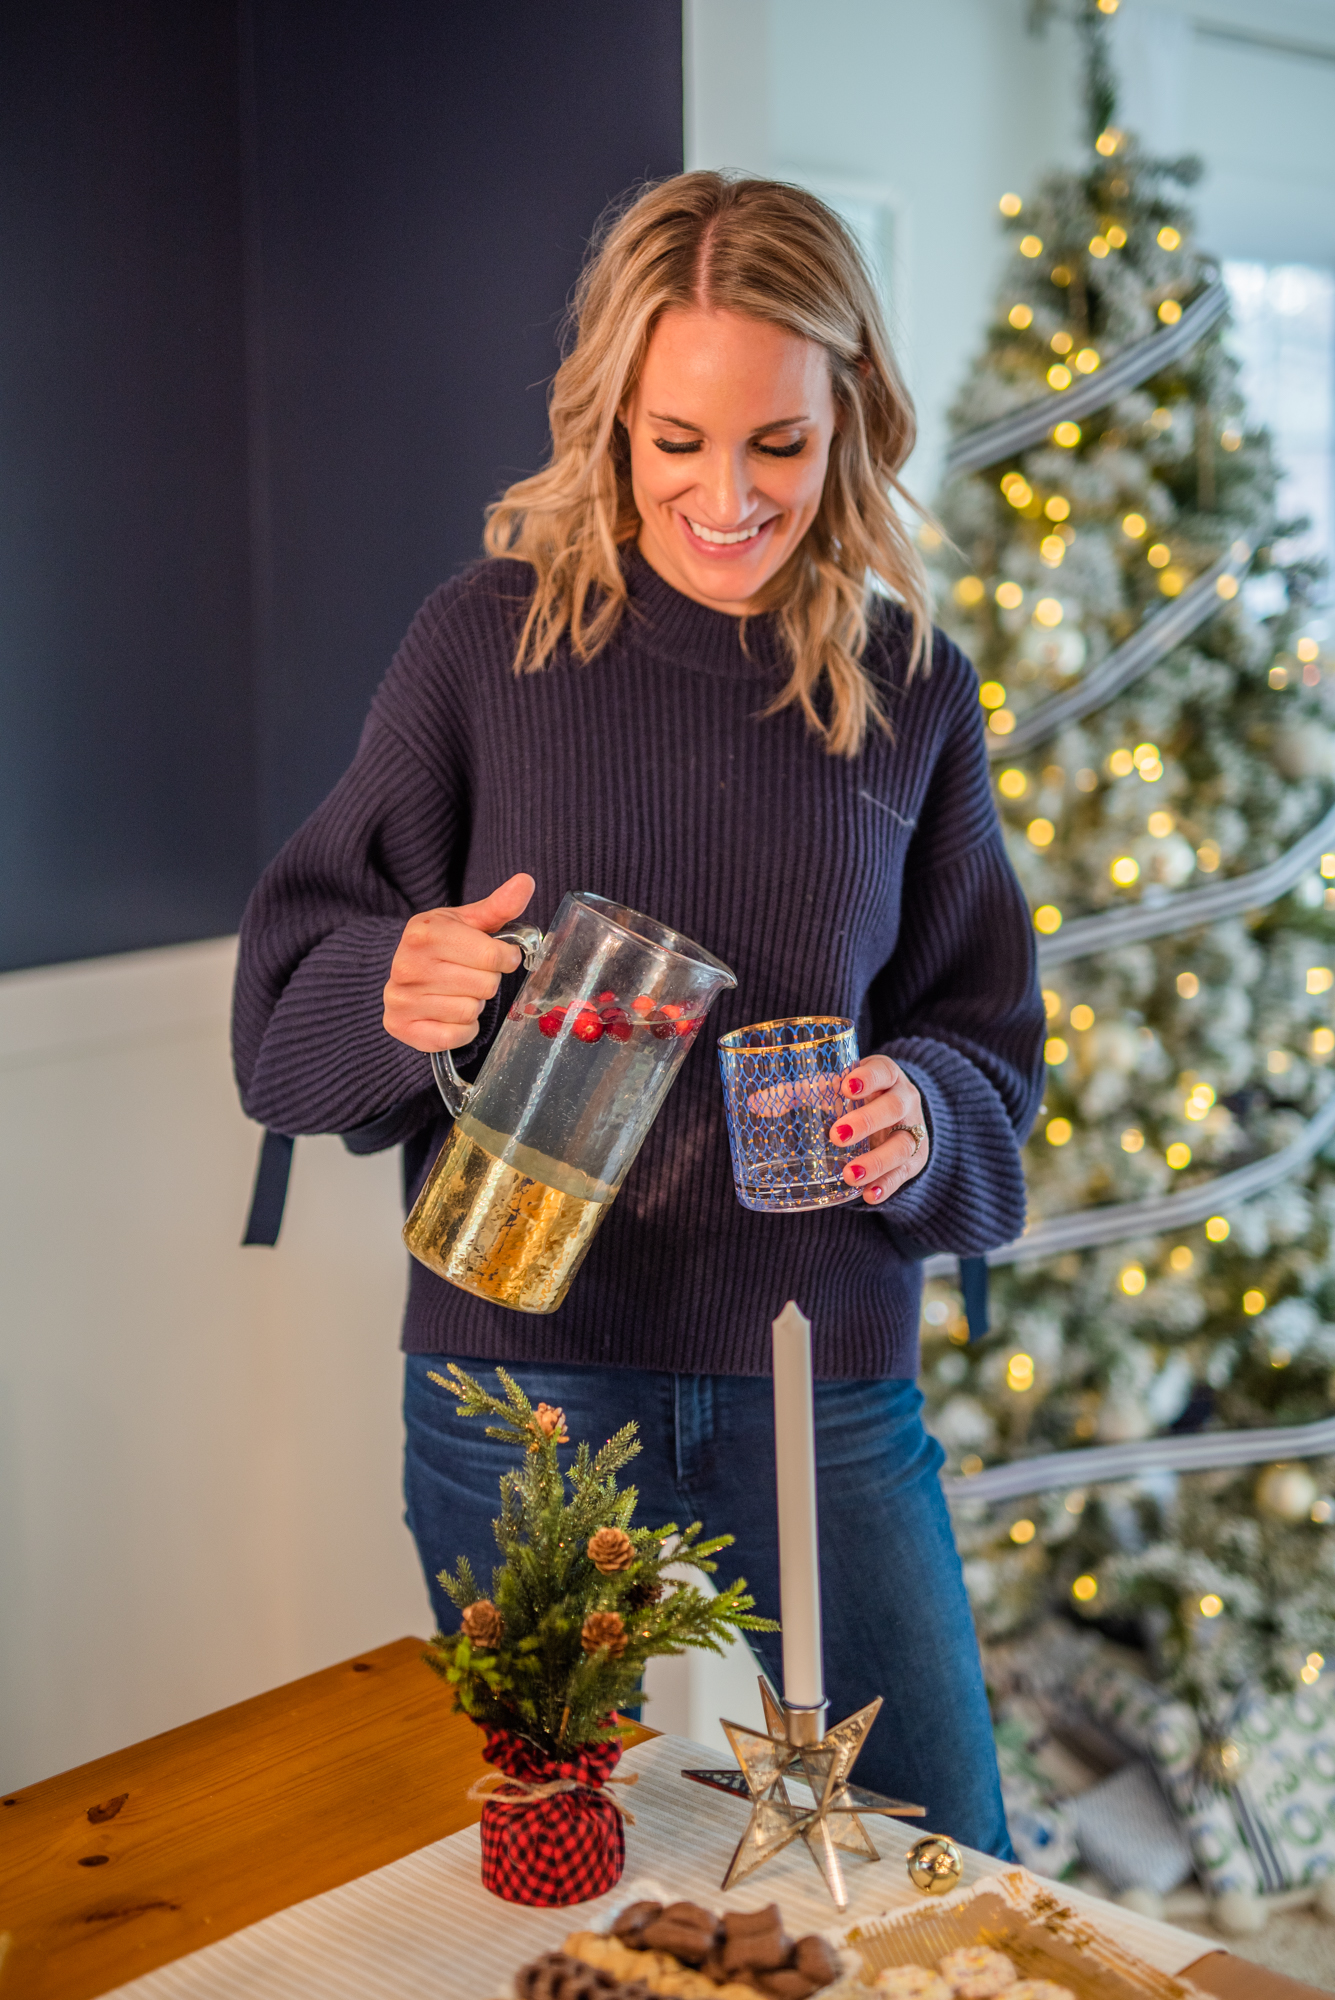 photo of woman pouring holiday drinks from pitcher